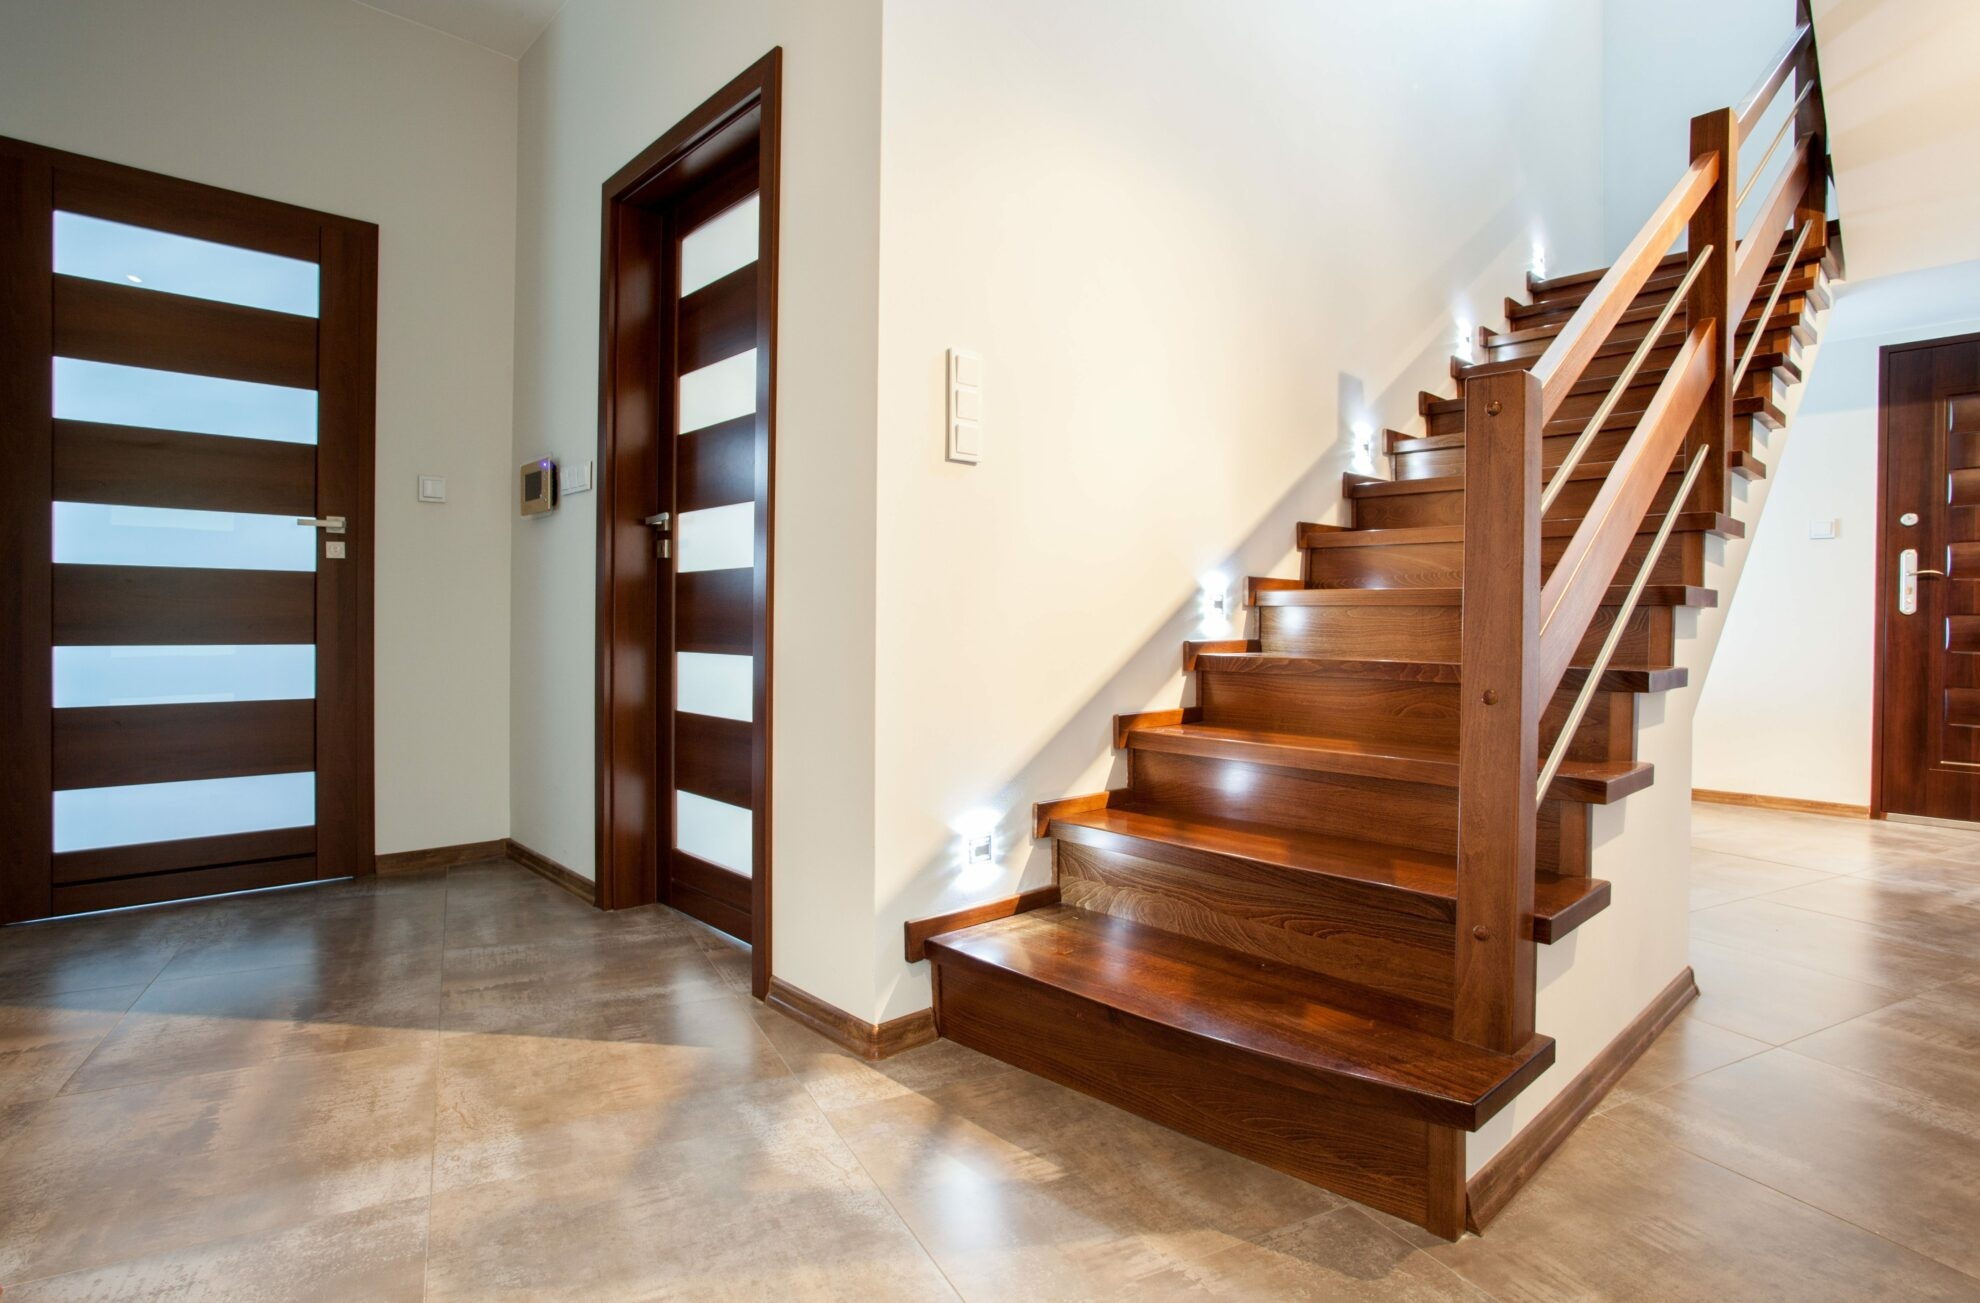 How Much Does Refinishing Hardwood Stairs Cost | Refinishing Hardwood Stairs Cost | Basement Stairs | Laminate Flooring | Stain | Hardwood Floor Refinishing | Sanding